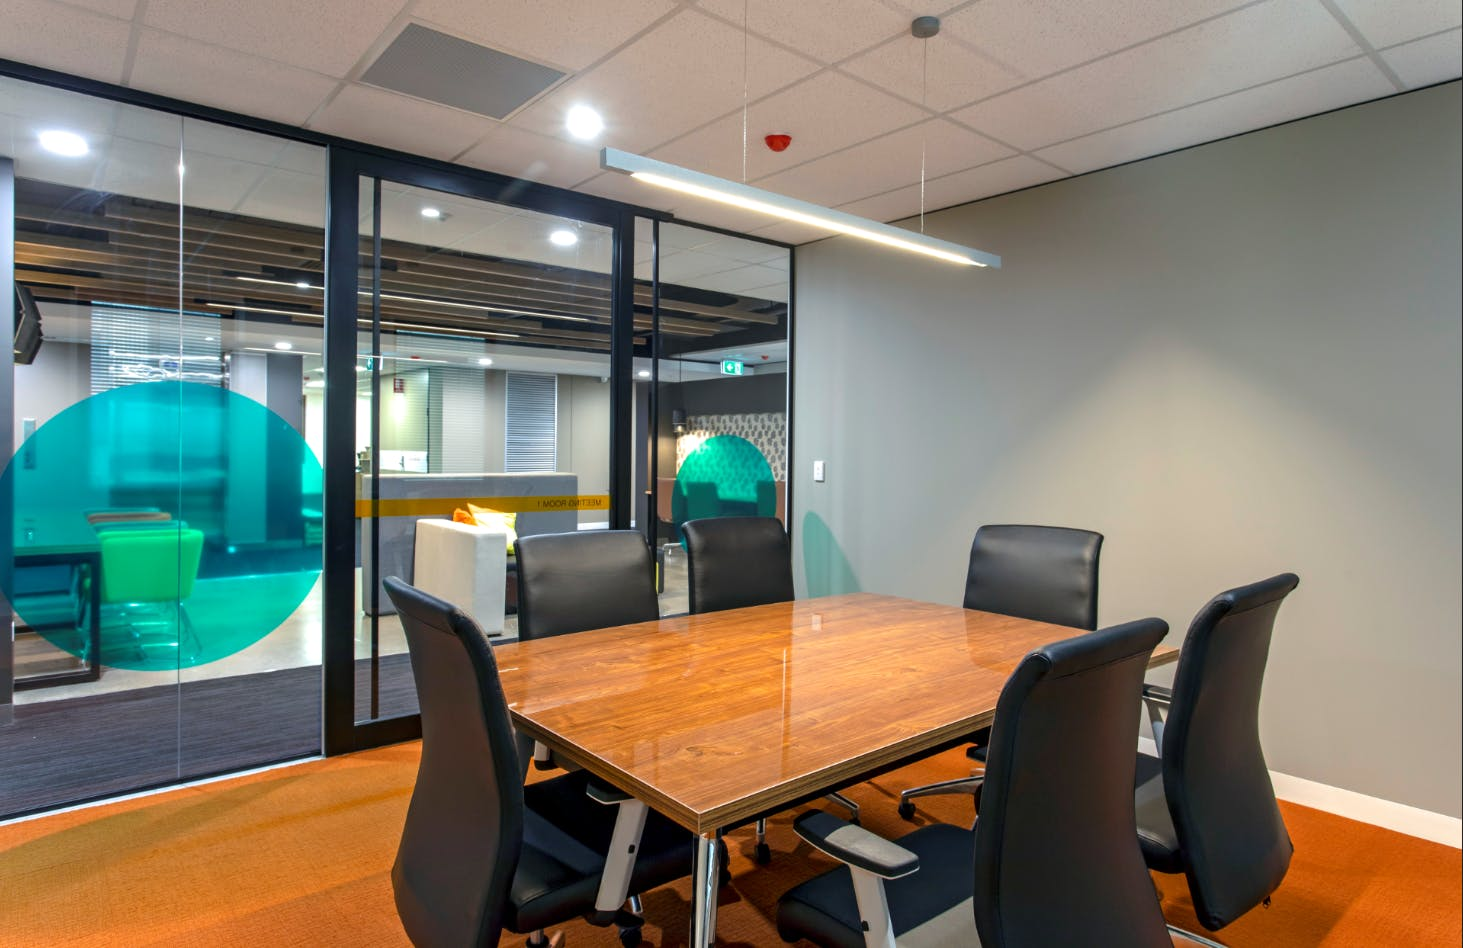 Suite 11, serviced office at Spot Co-Working, image 3